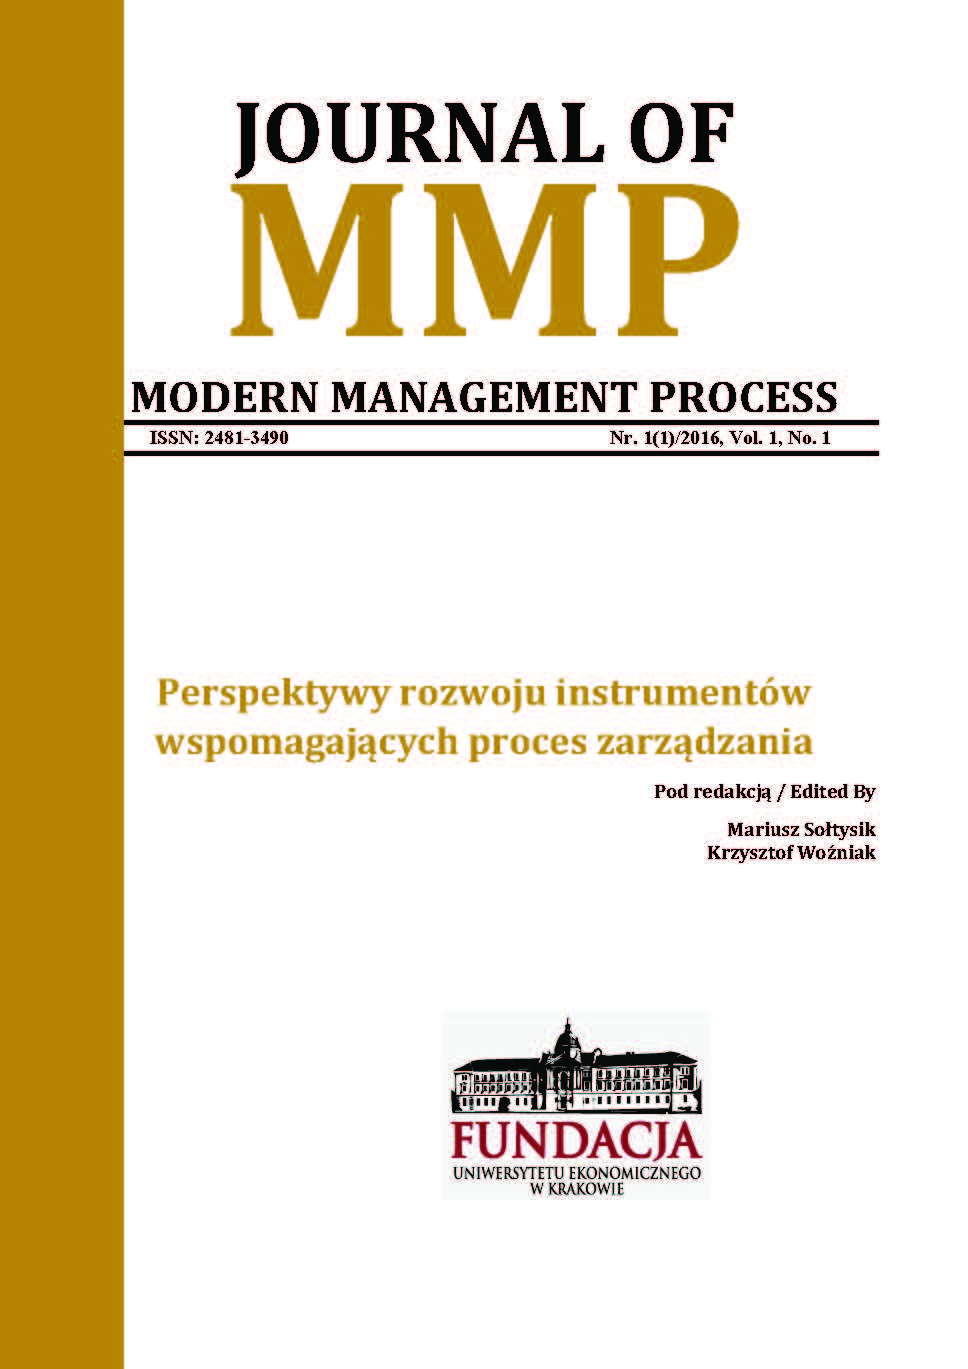 Journal of Modern Management Process